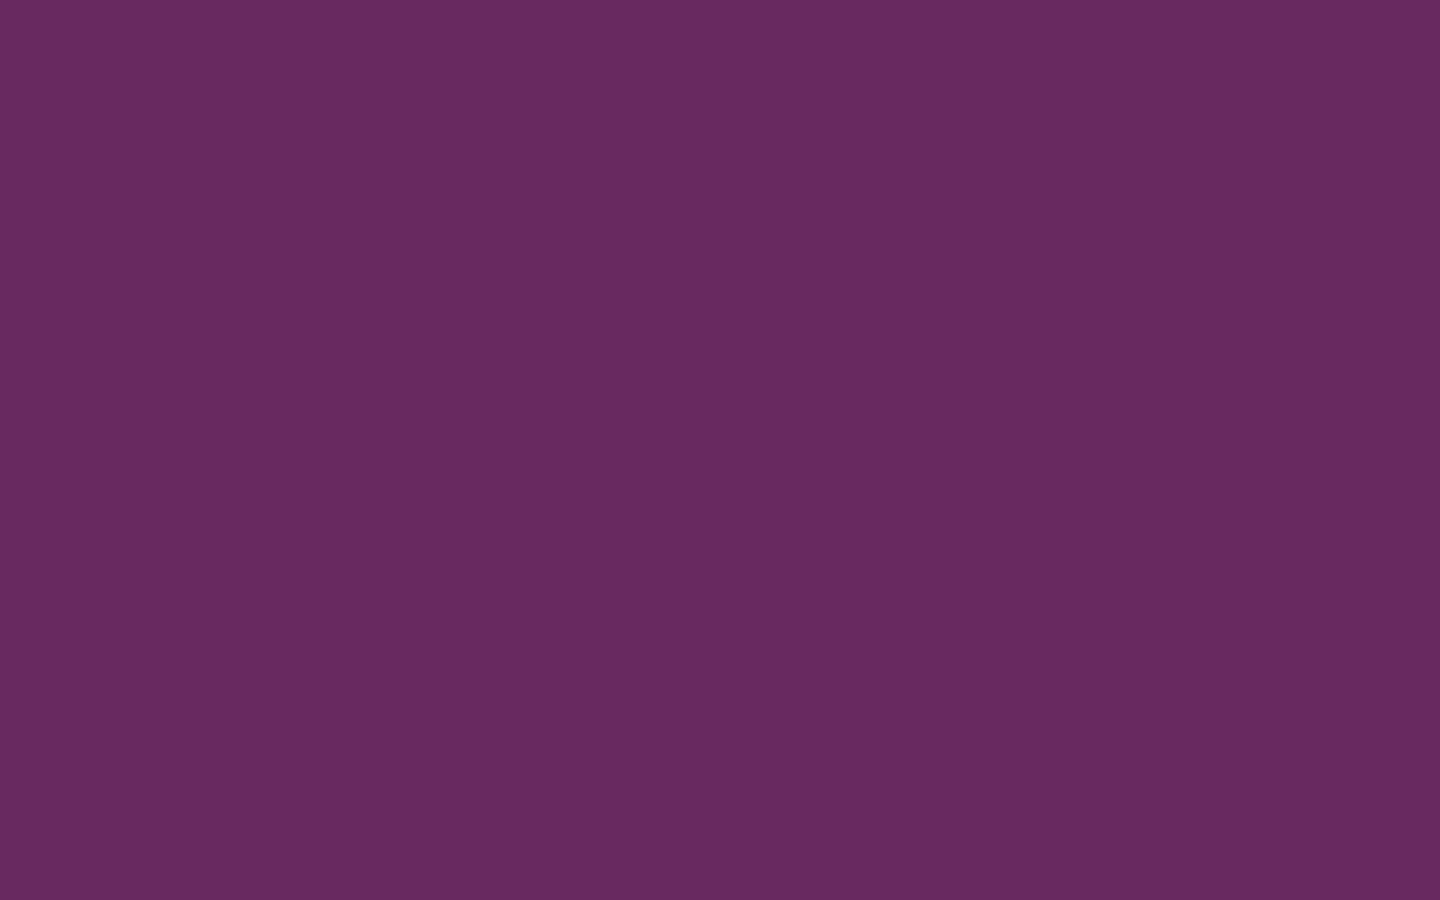 1440x900 Palatinate Purple Solid Color Background